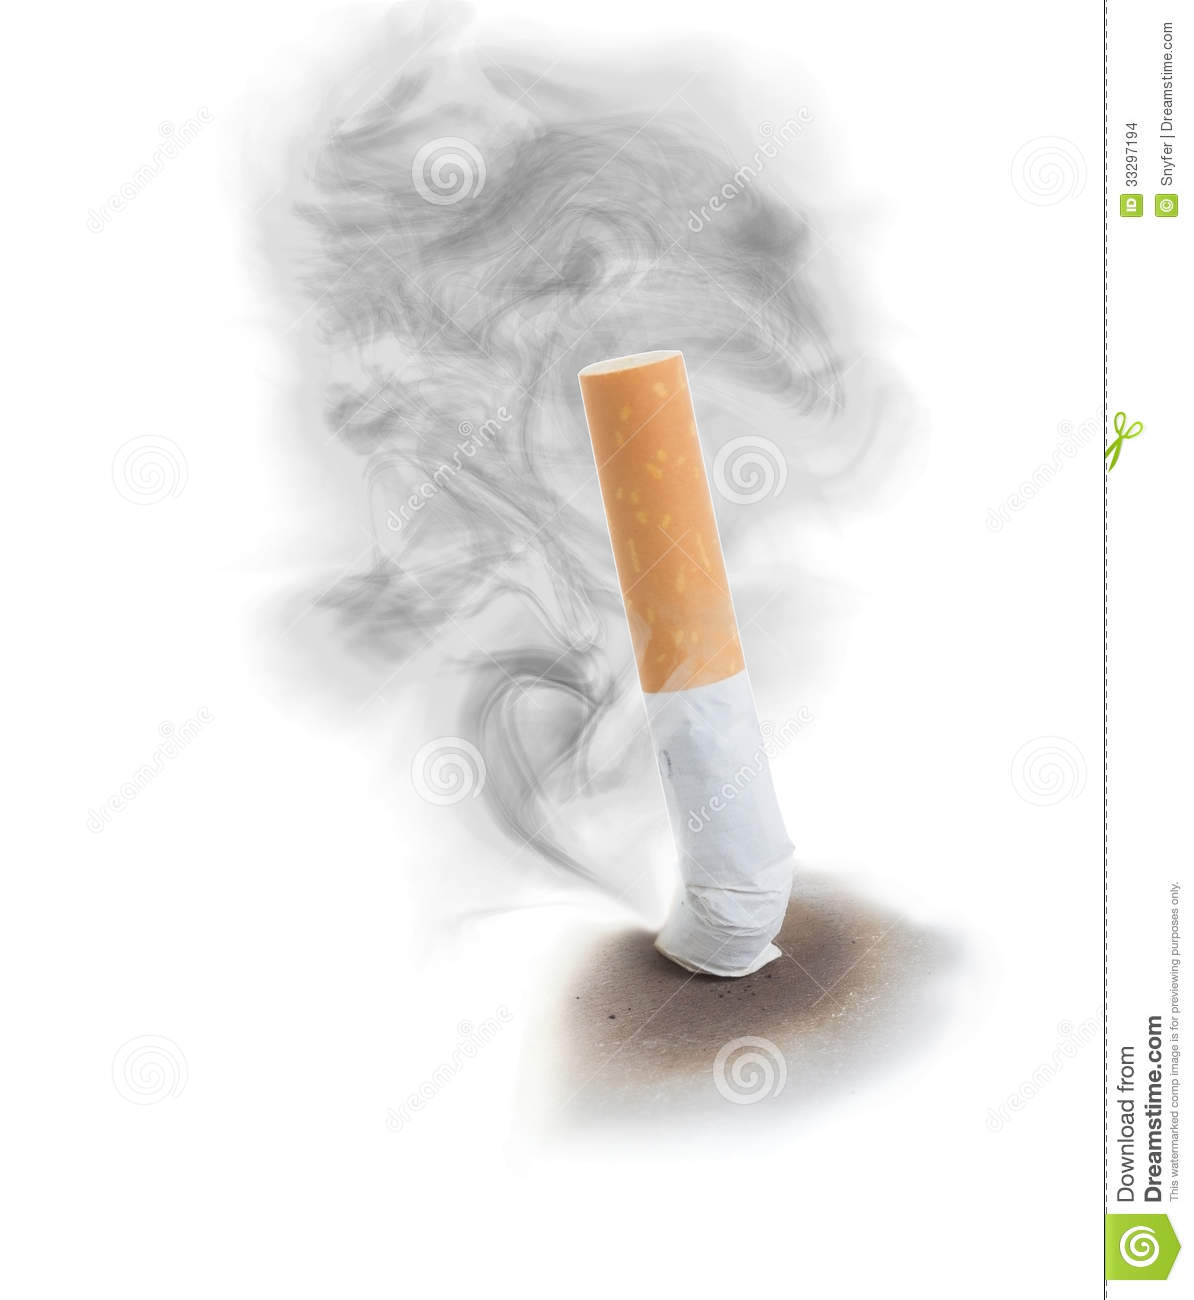 extinguised sigarette with smoke cloud stock images